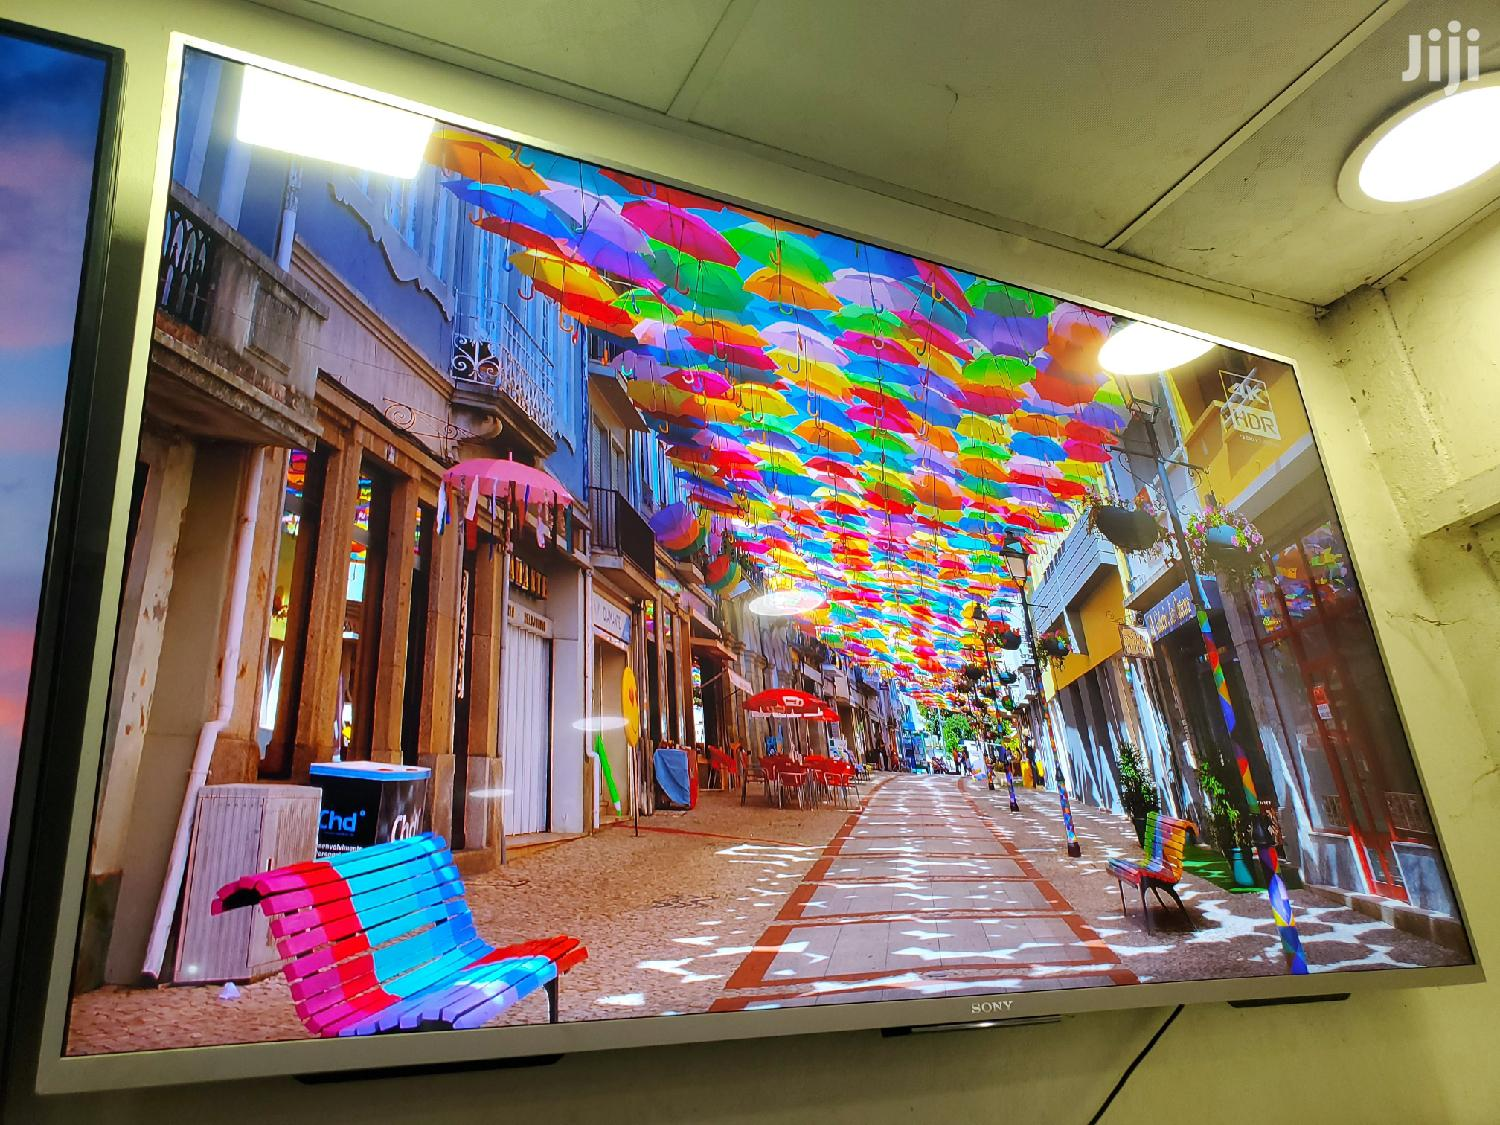 Brand New Sony Bravia 55inch Suhd 4k Android Tvs